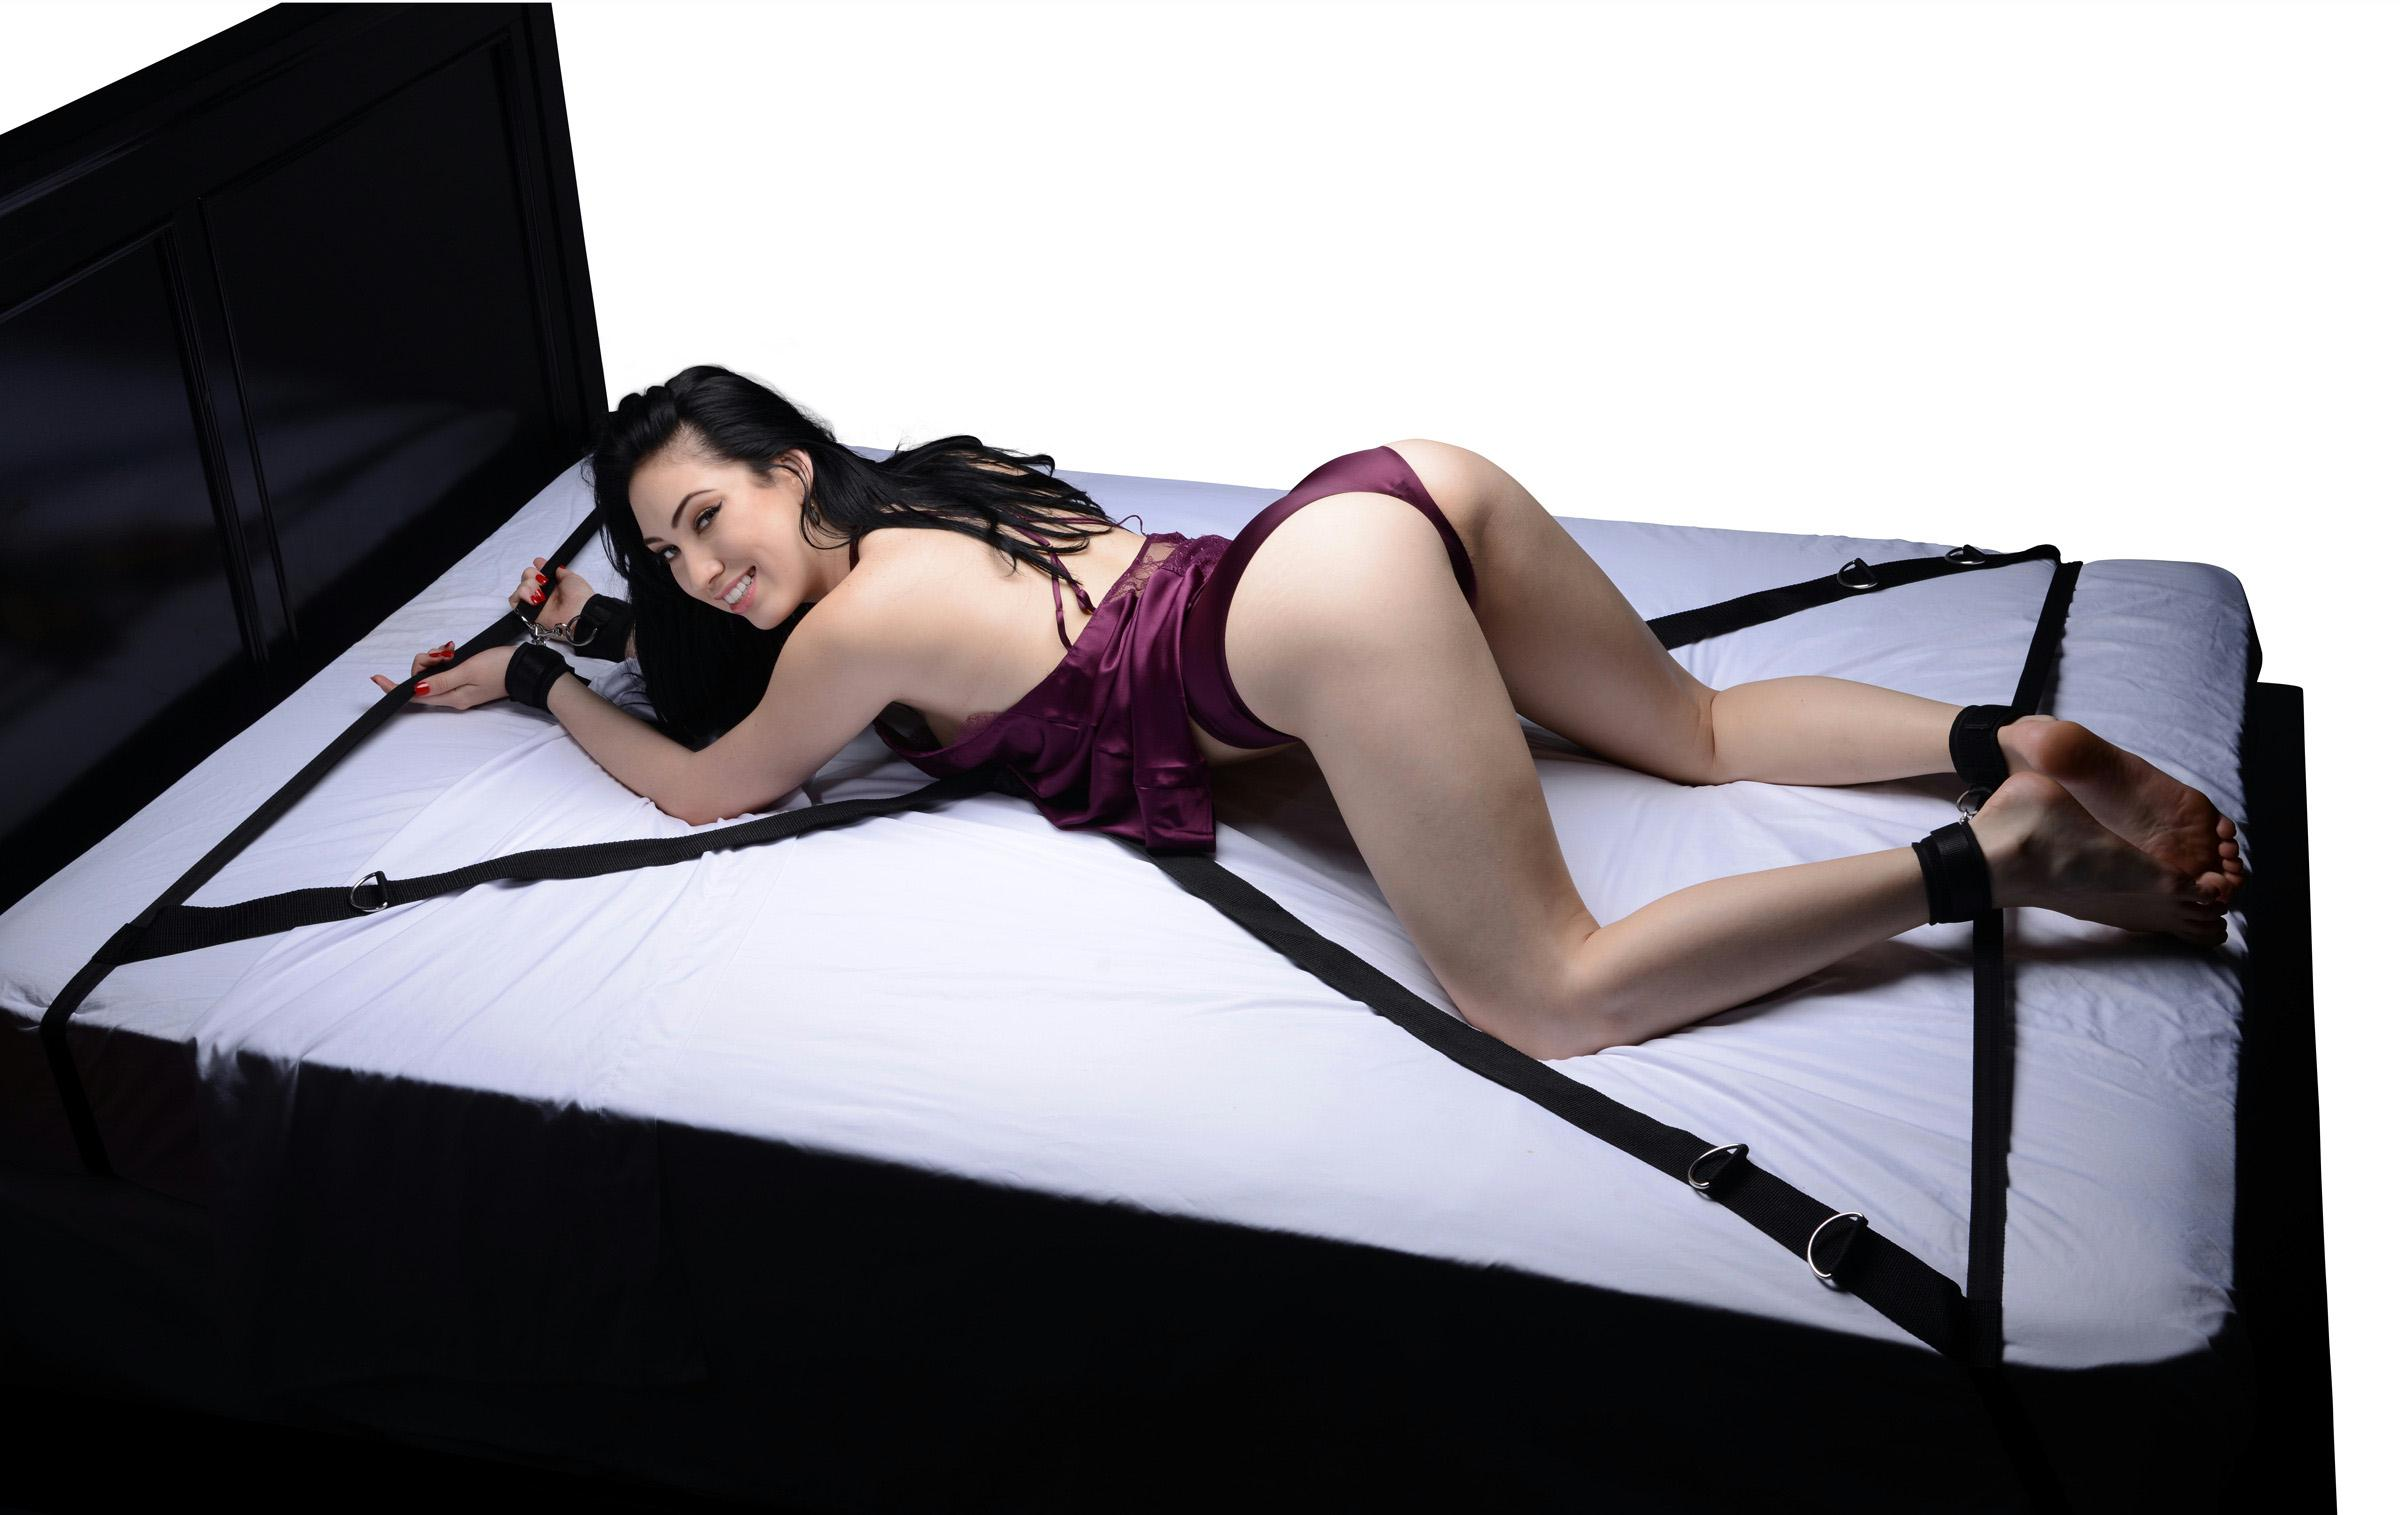 Sex And Mischief Bling Hand Cuffs, Fetish Bondage Bedroom Play